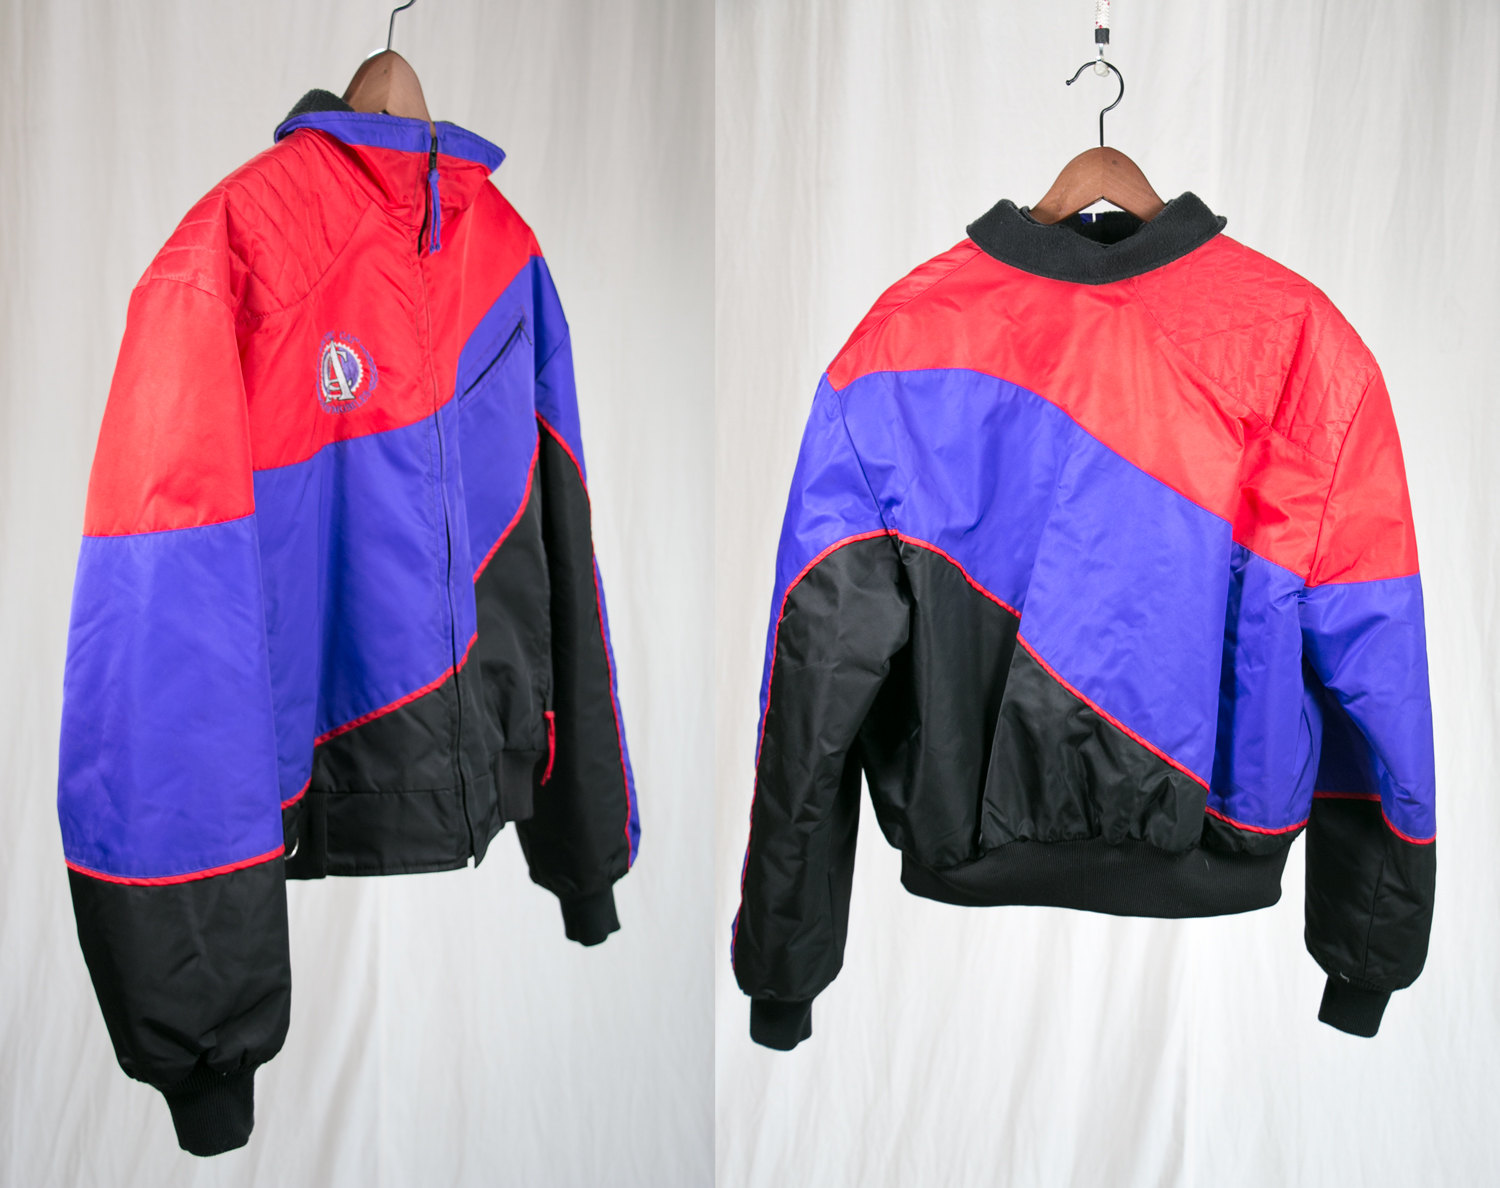 "Vintage 1980's Neon Arctic Cat Snowmobile Jacket - Unisex / Women's Large - ""Panther Jacket"" - Indie, Hipster, Articwear, Three River Falls"